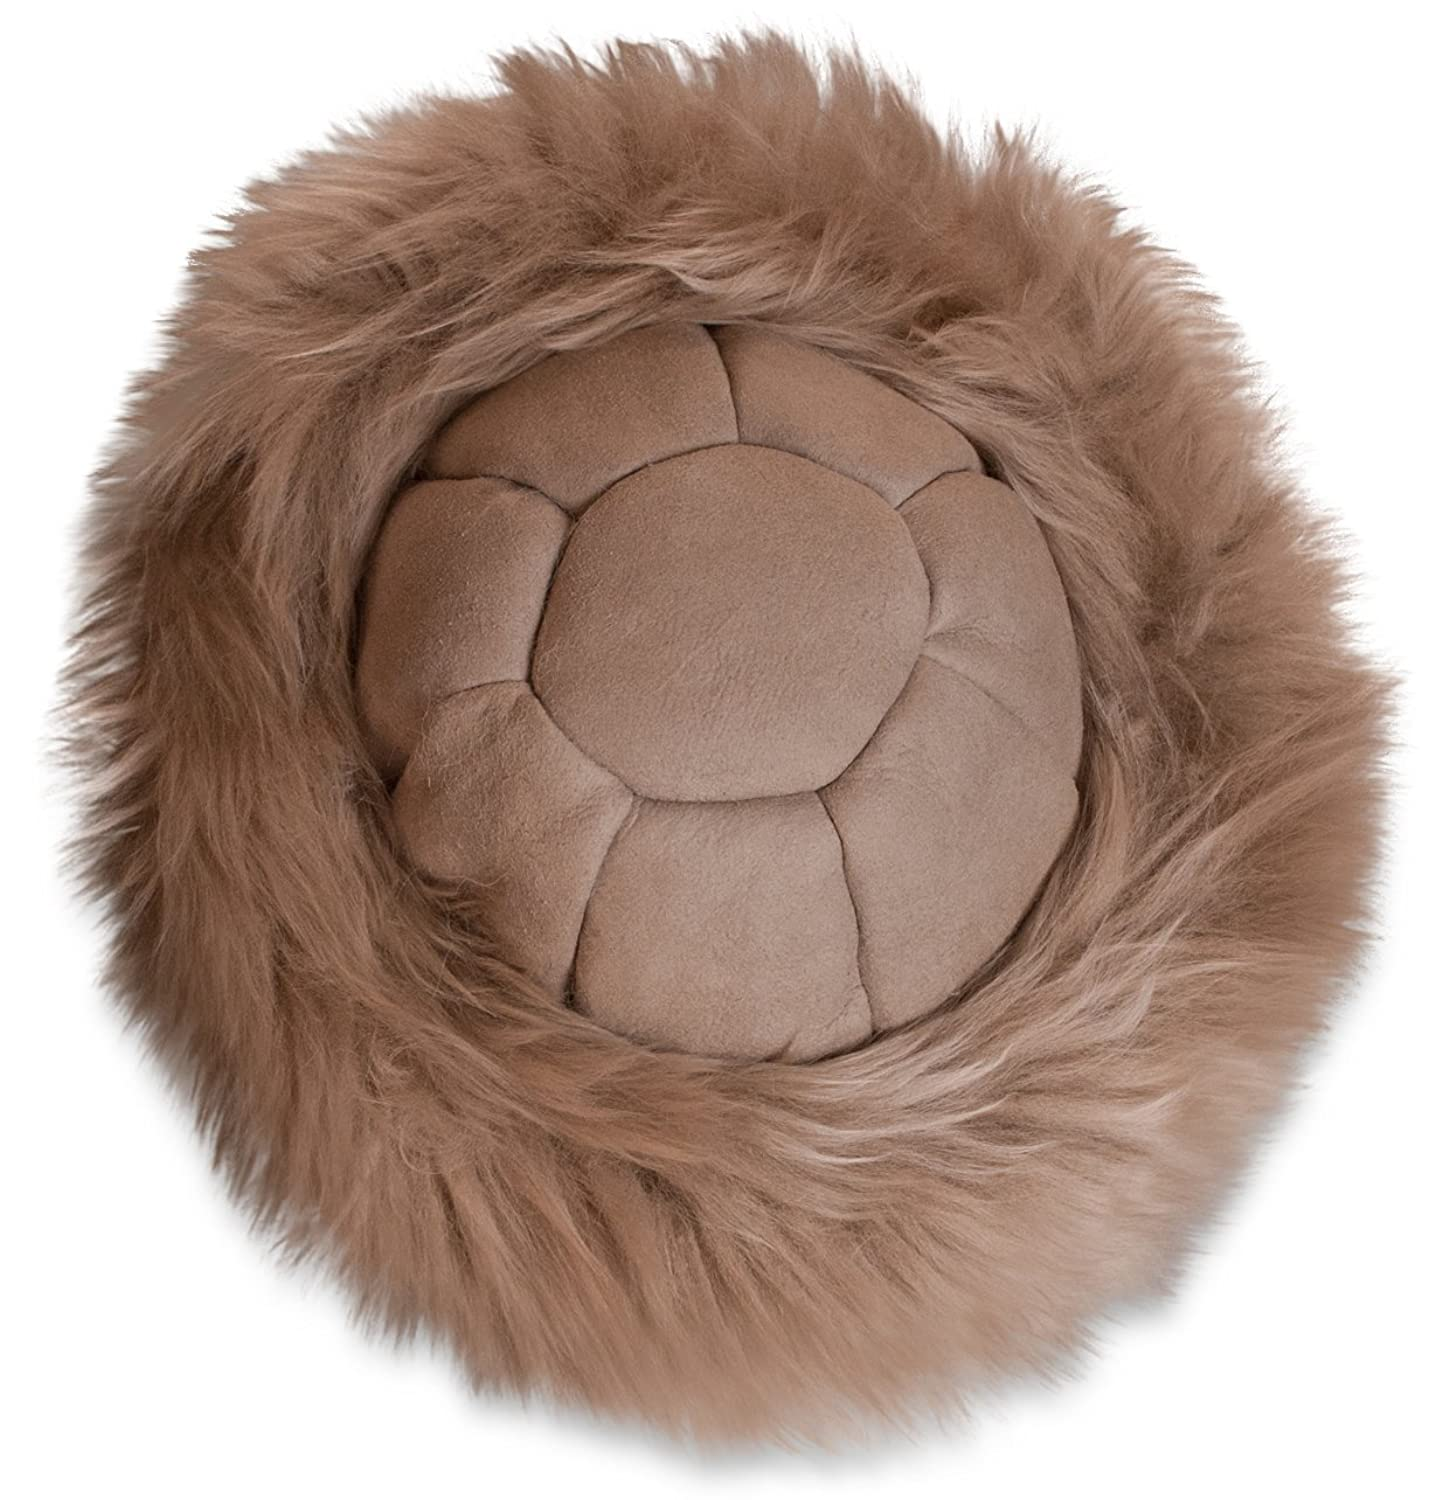 Ladies Sheepskin Cossack Hat Biege with Tan top 100 % genuine sheepskin Soft 9c7ac0818a5